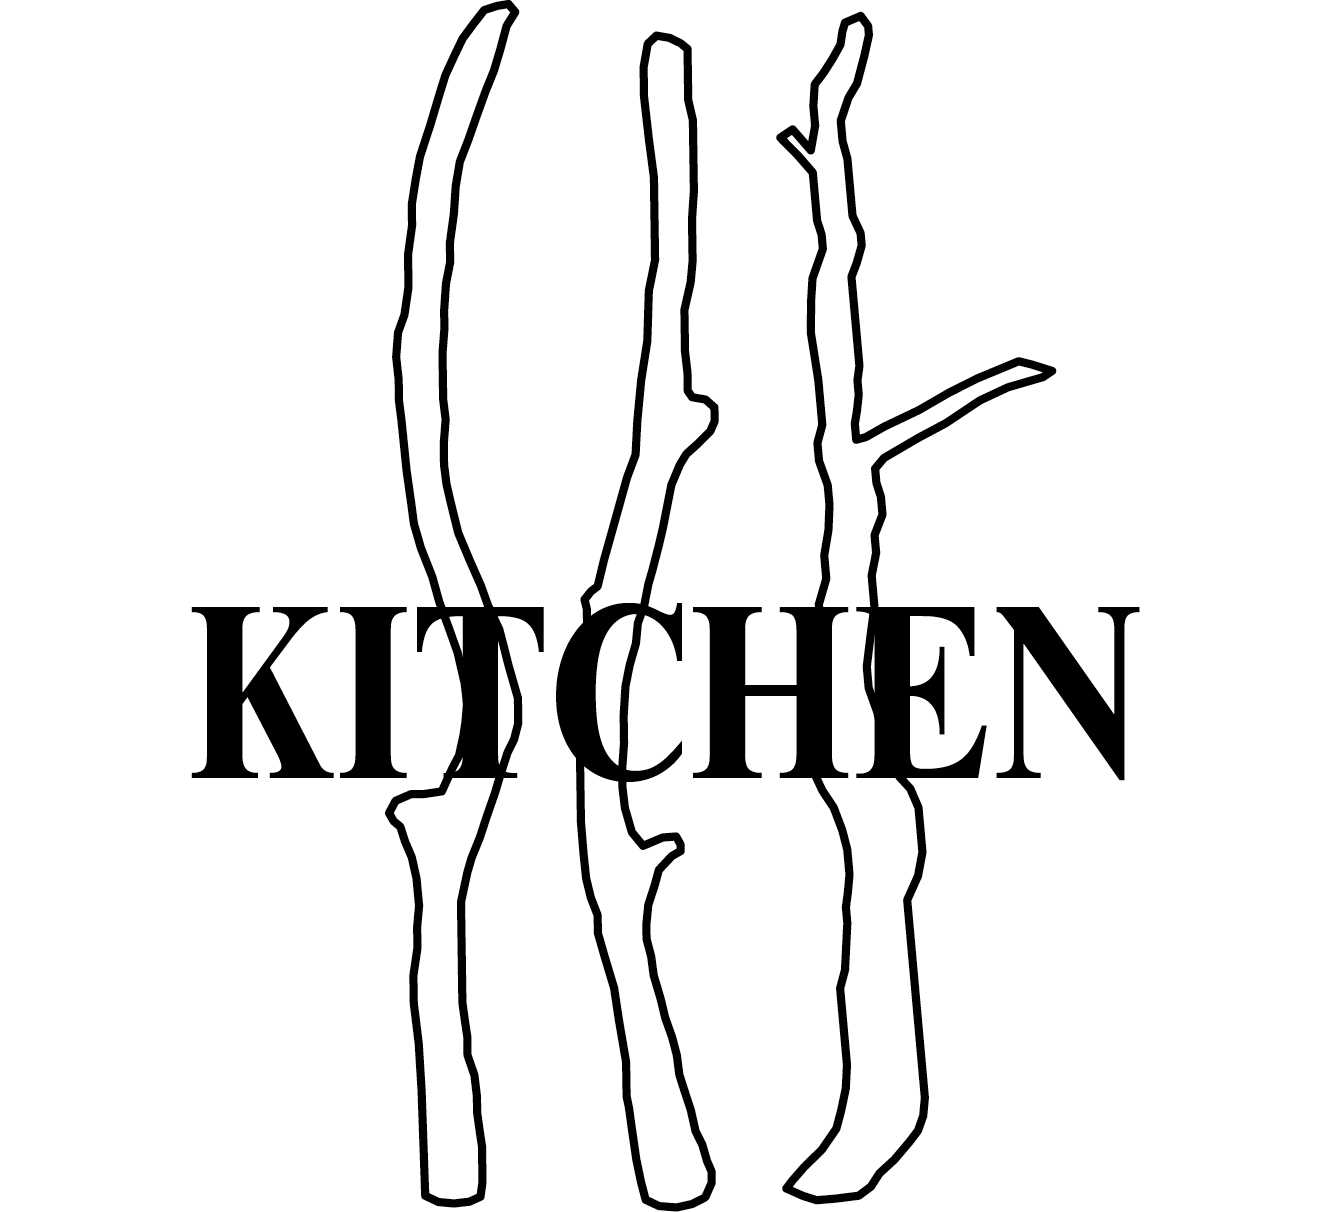 The Kitchen (logo)